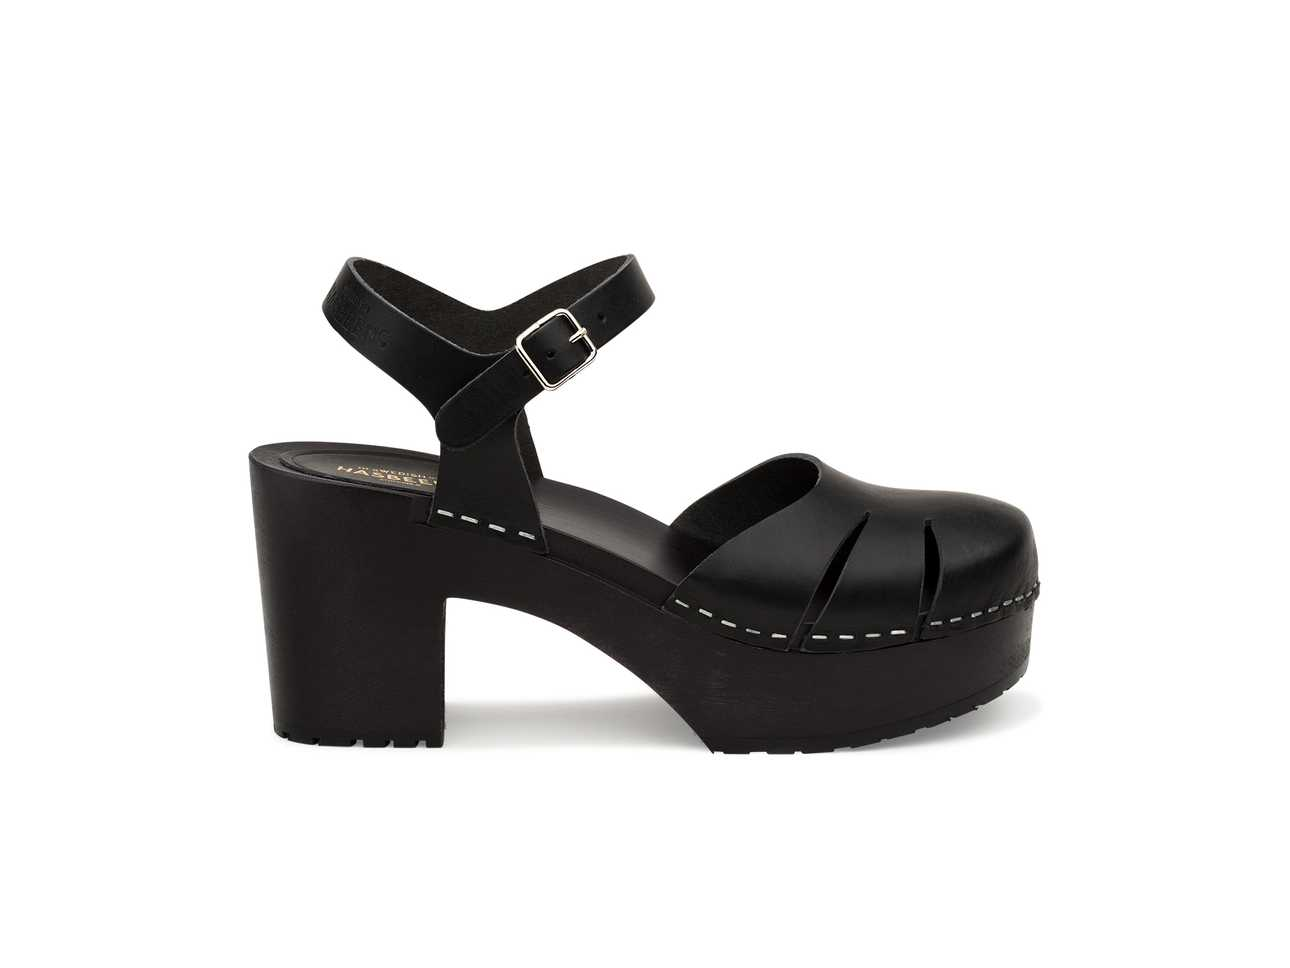 Baskemölla Sandal Black/black Sole